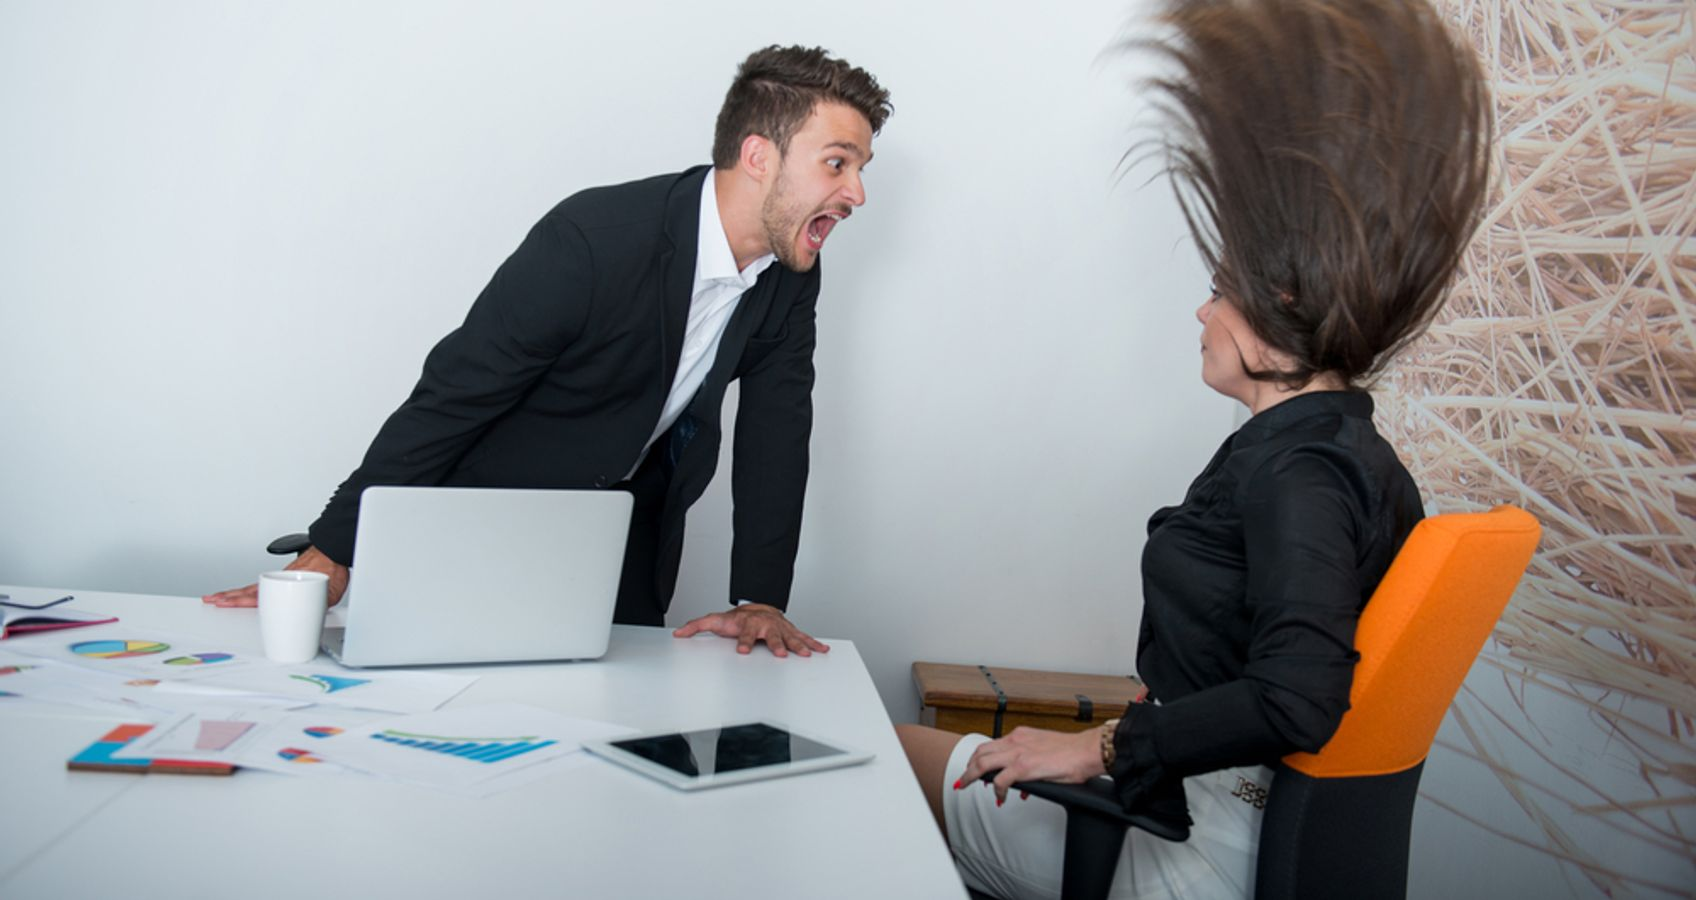 How to Deliver Negative Feedback at Work